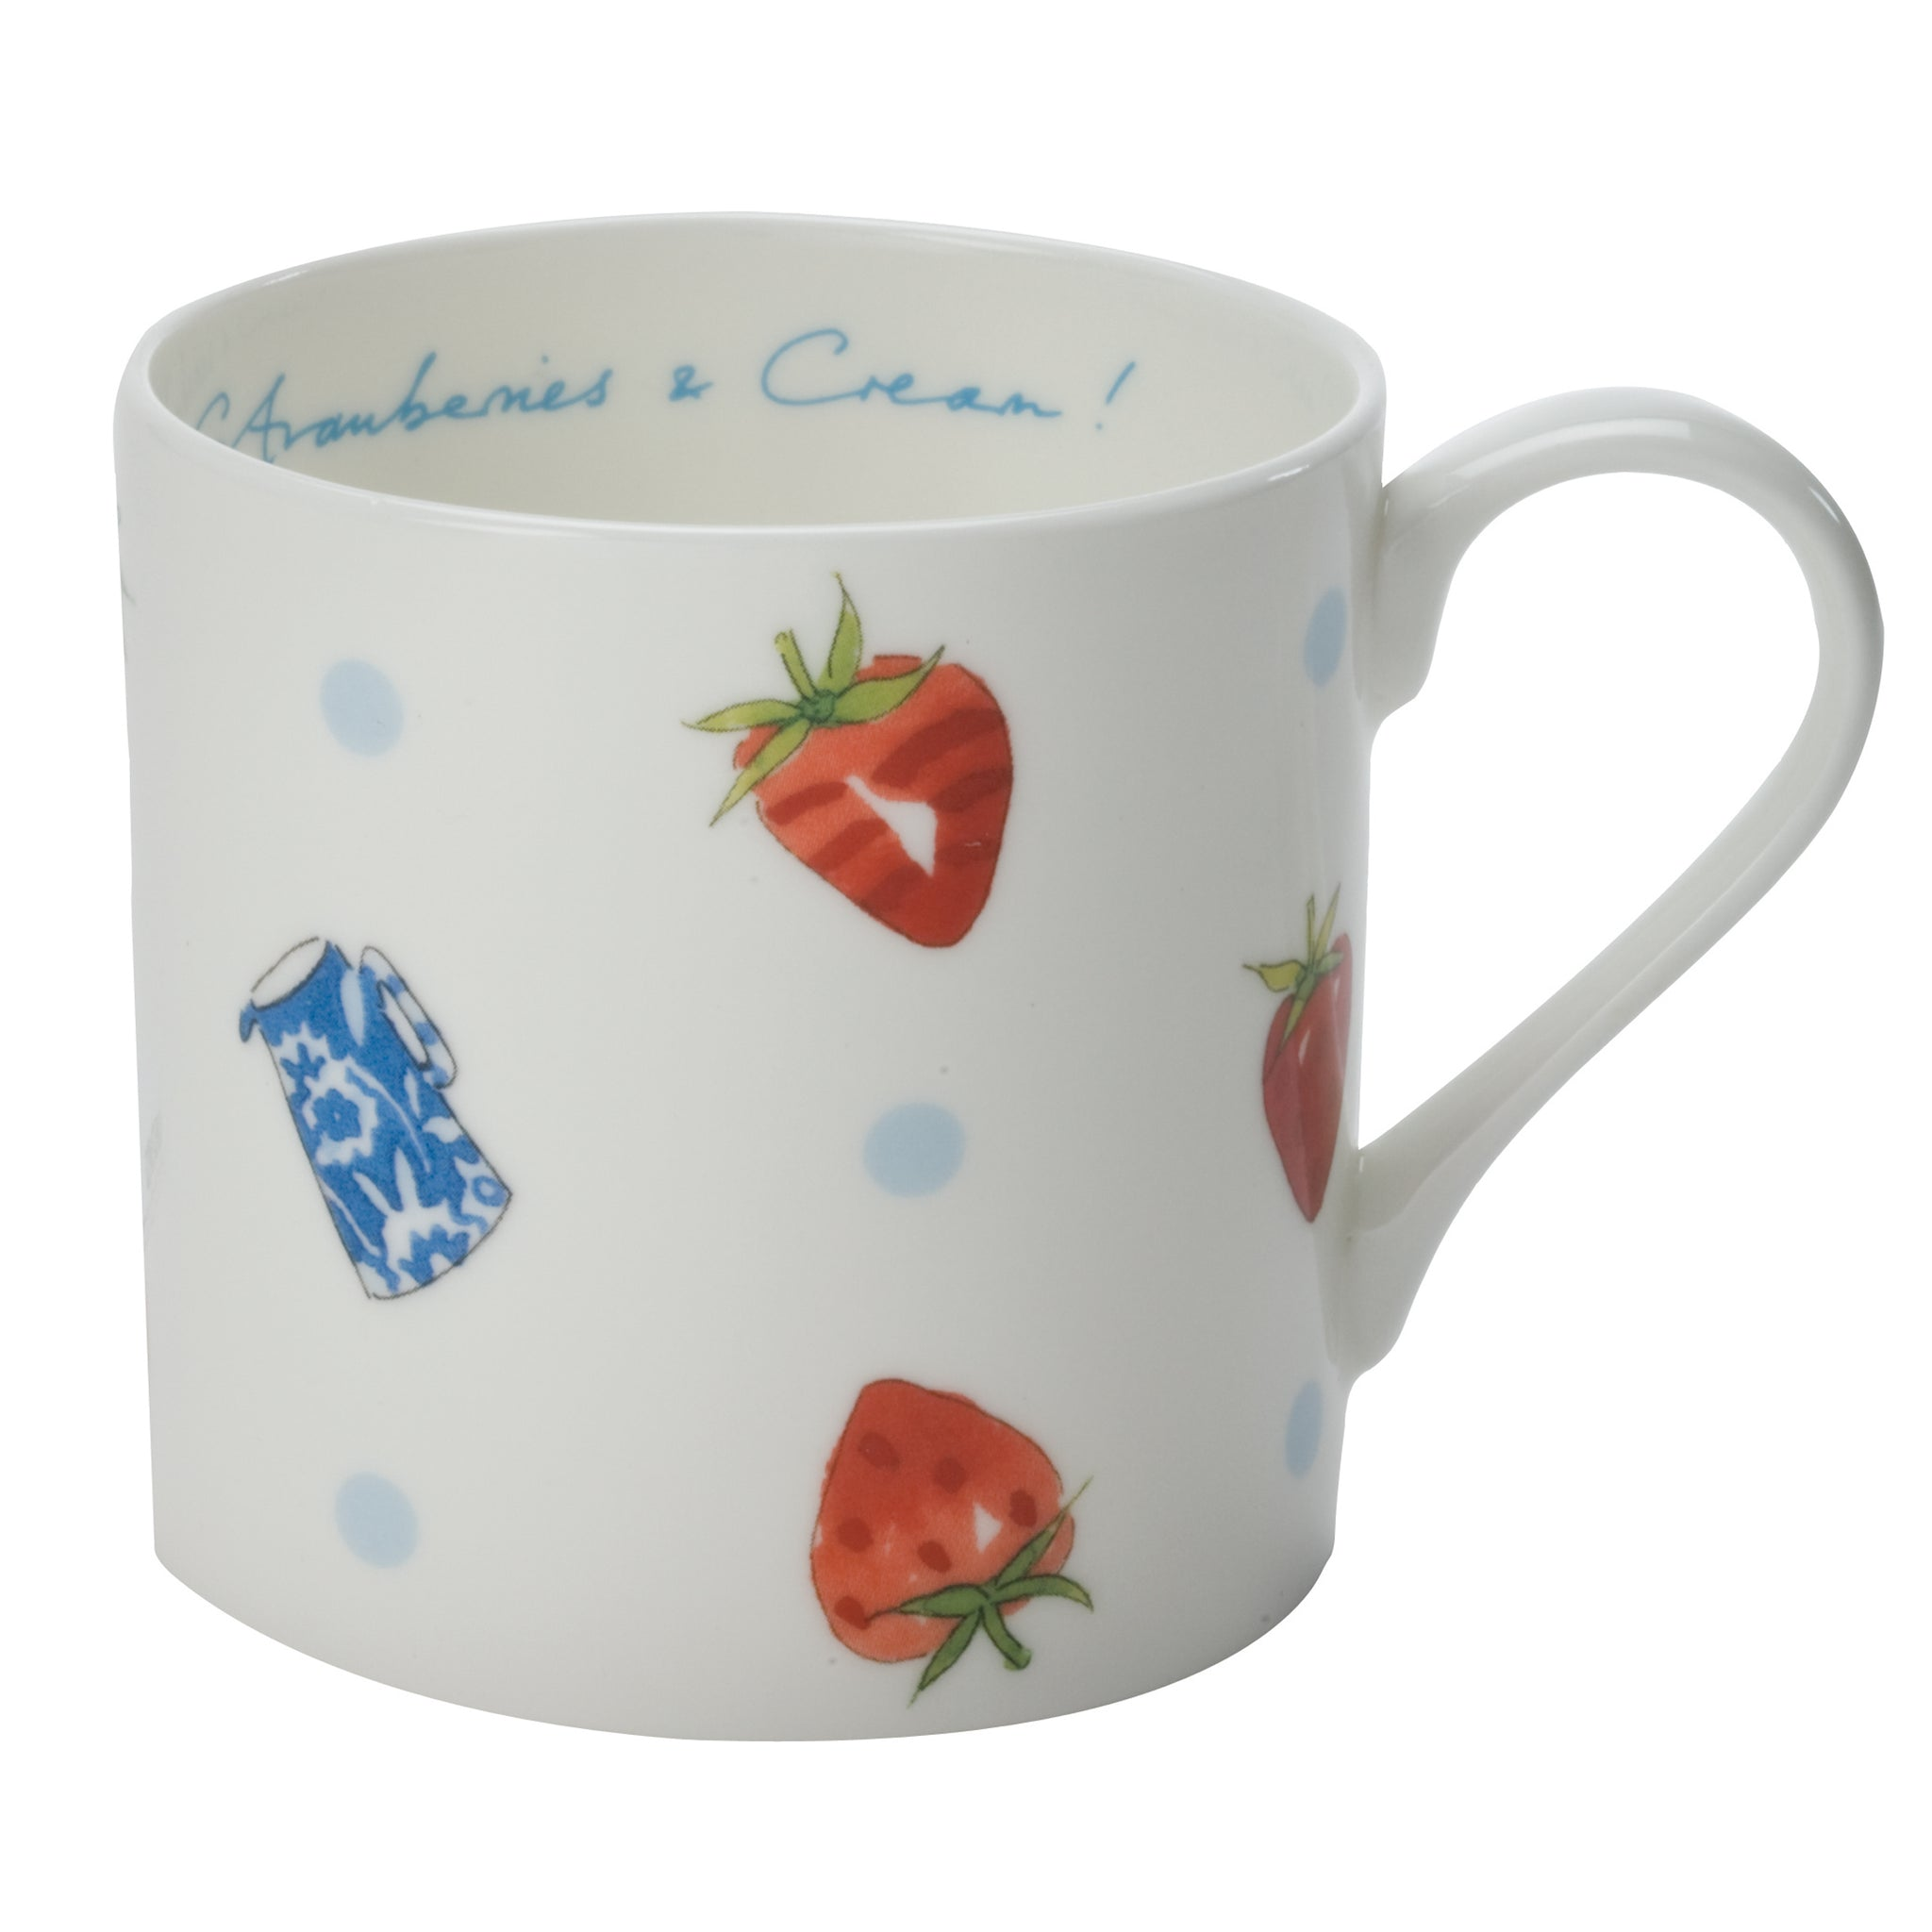 Strawberries & Cream Mug - White